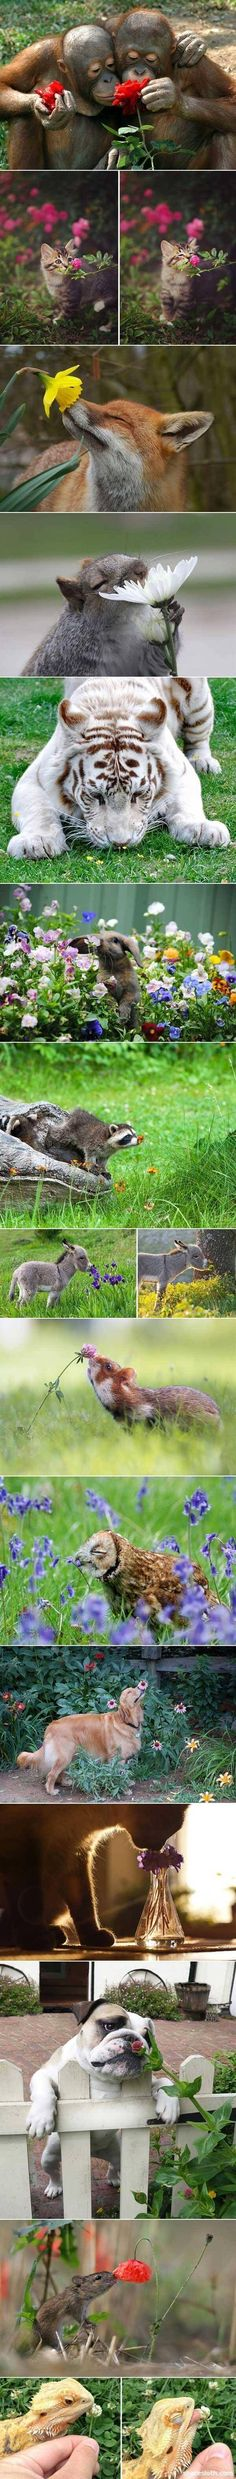 Animals Sniffing Flowers